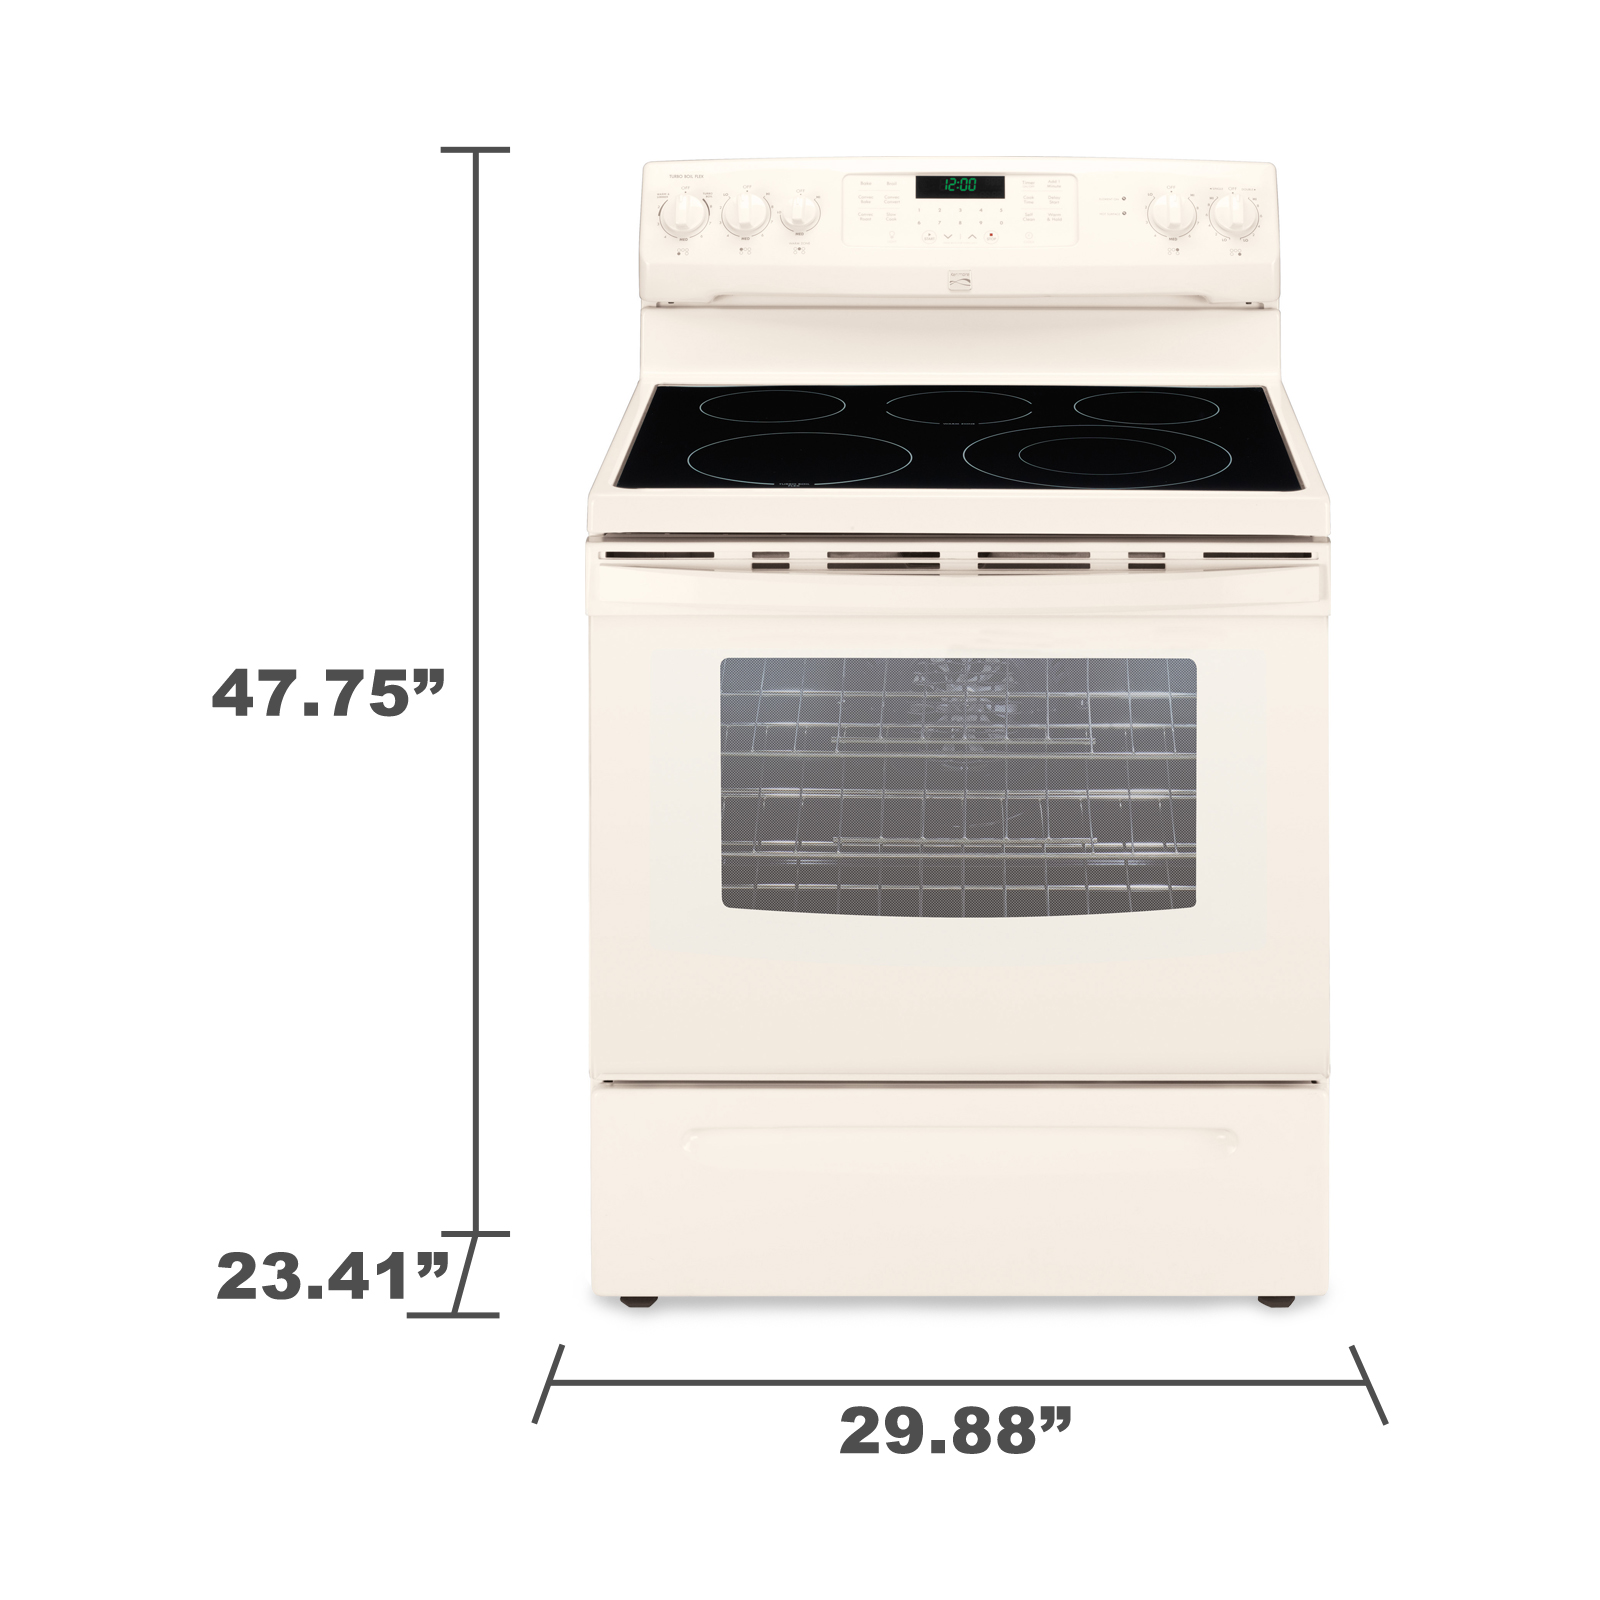 Kenmore 94204 5.7 cu. ft. Electric Range w/ True Convection - Bisque